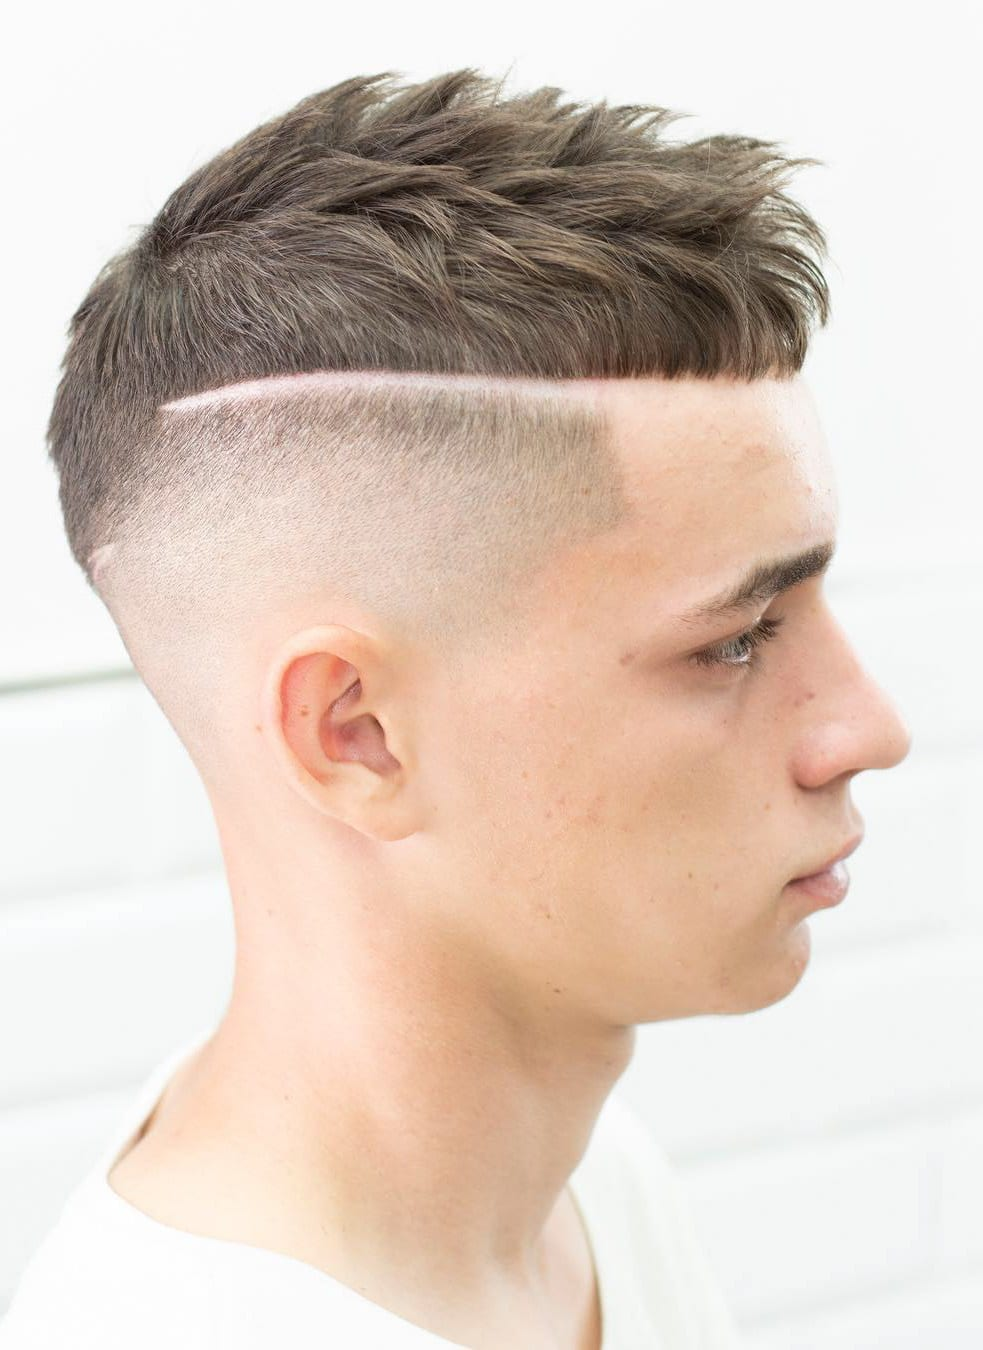 Undercut with Hard Line